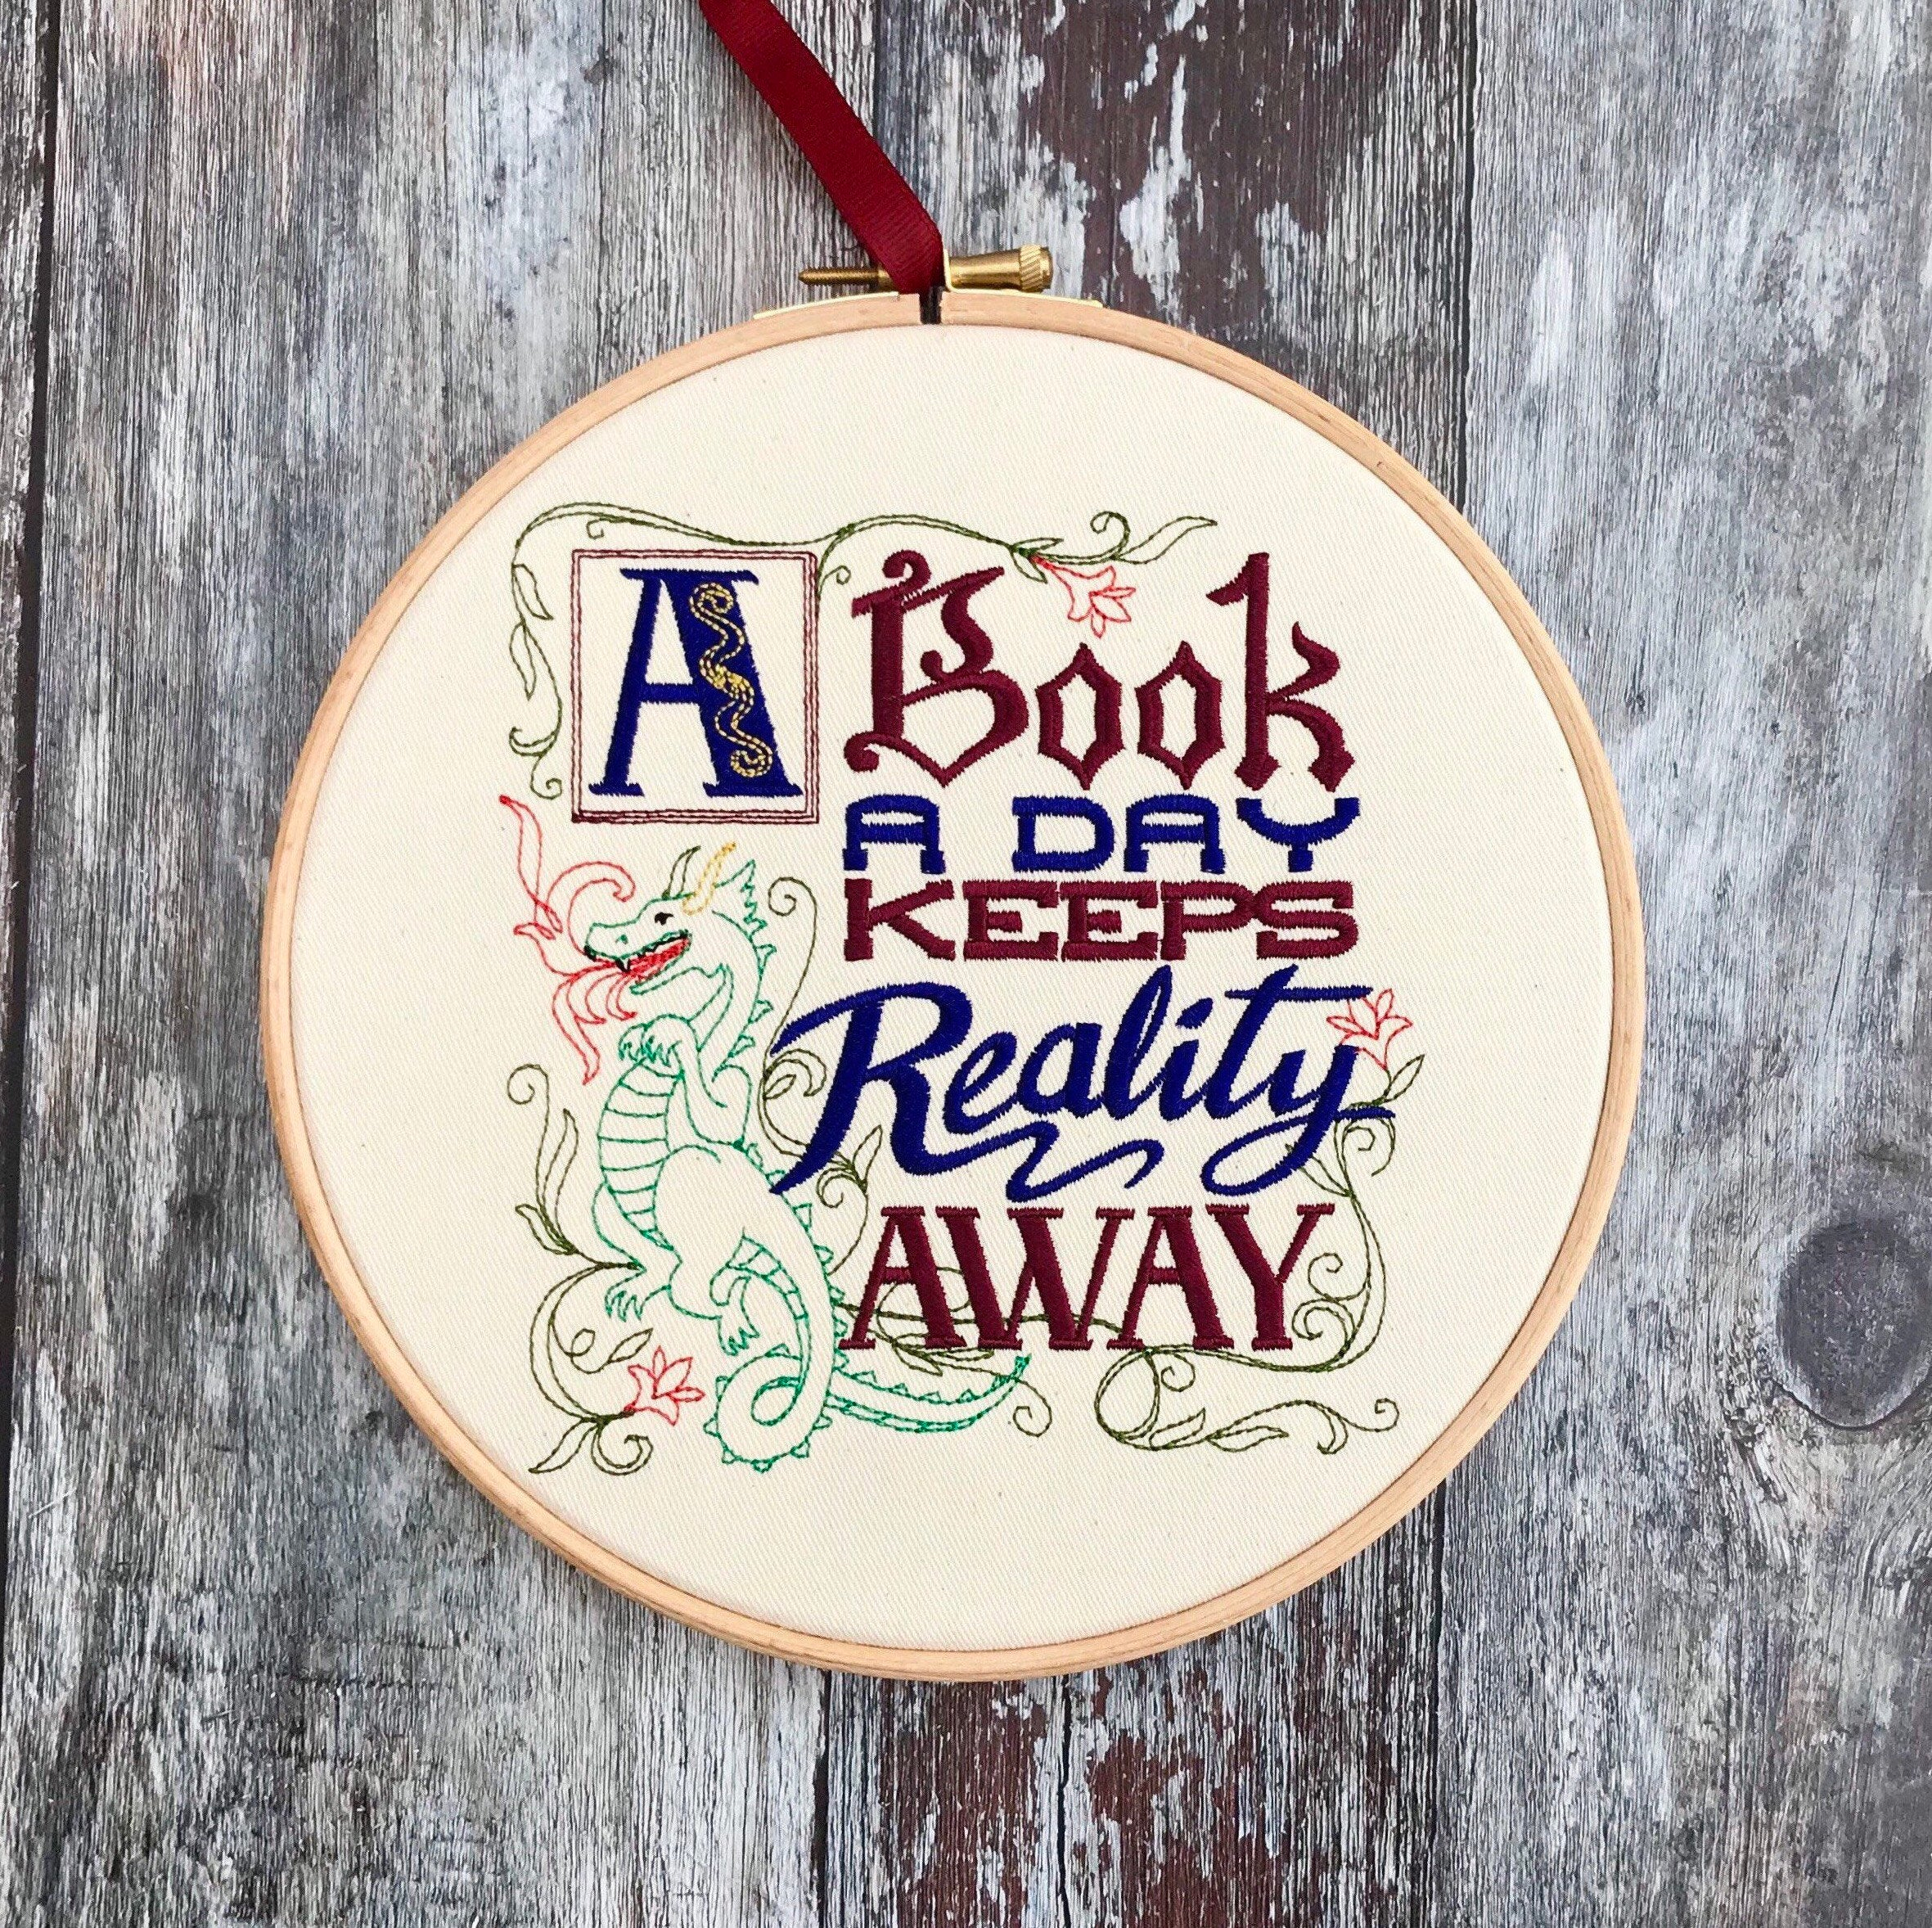 A book a day, keeps reality away, Embroidery hoop art